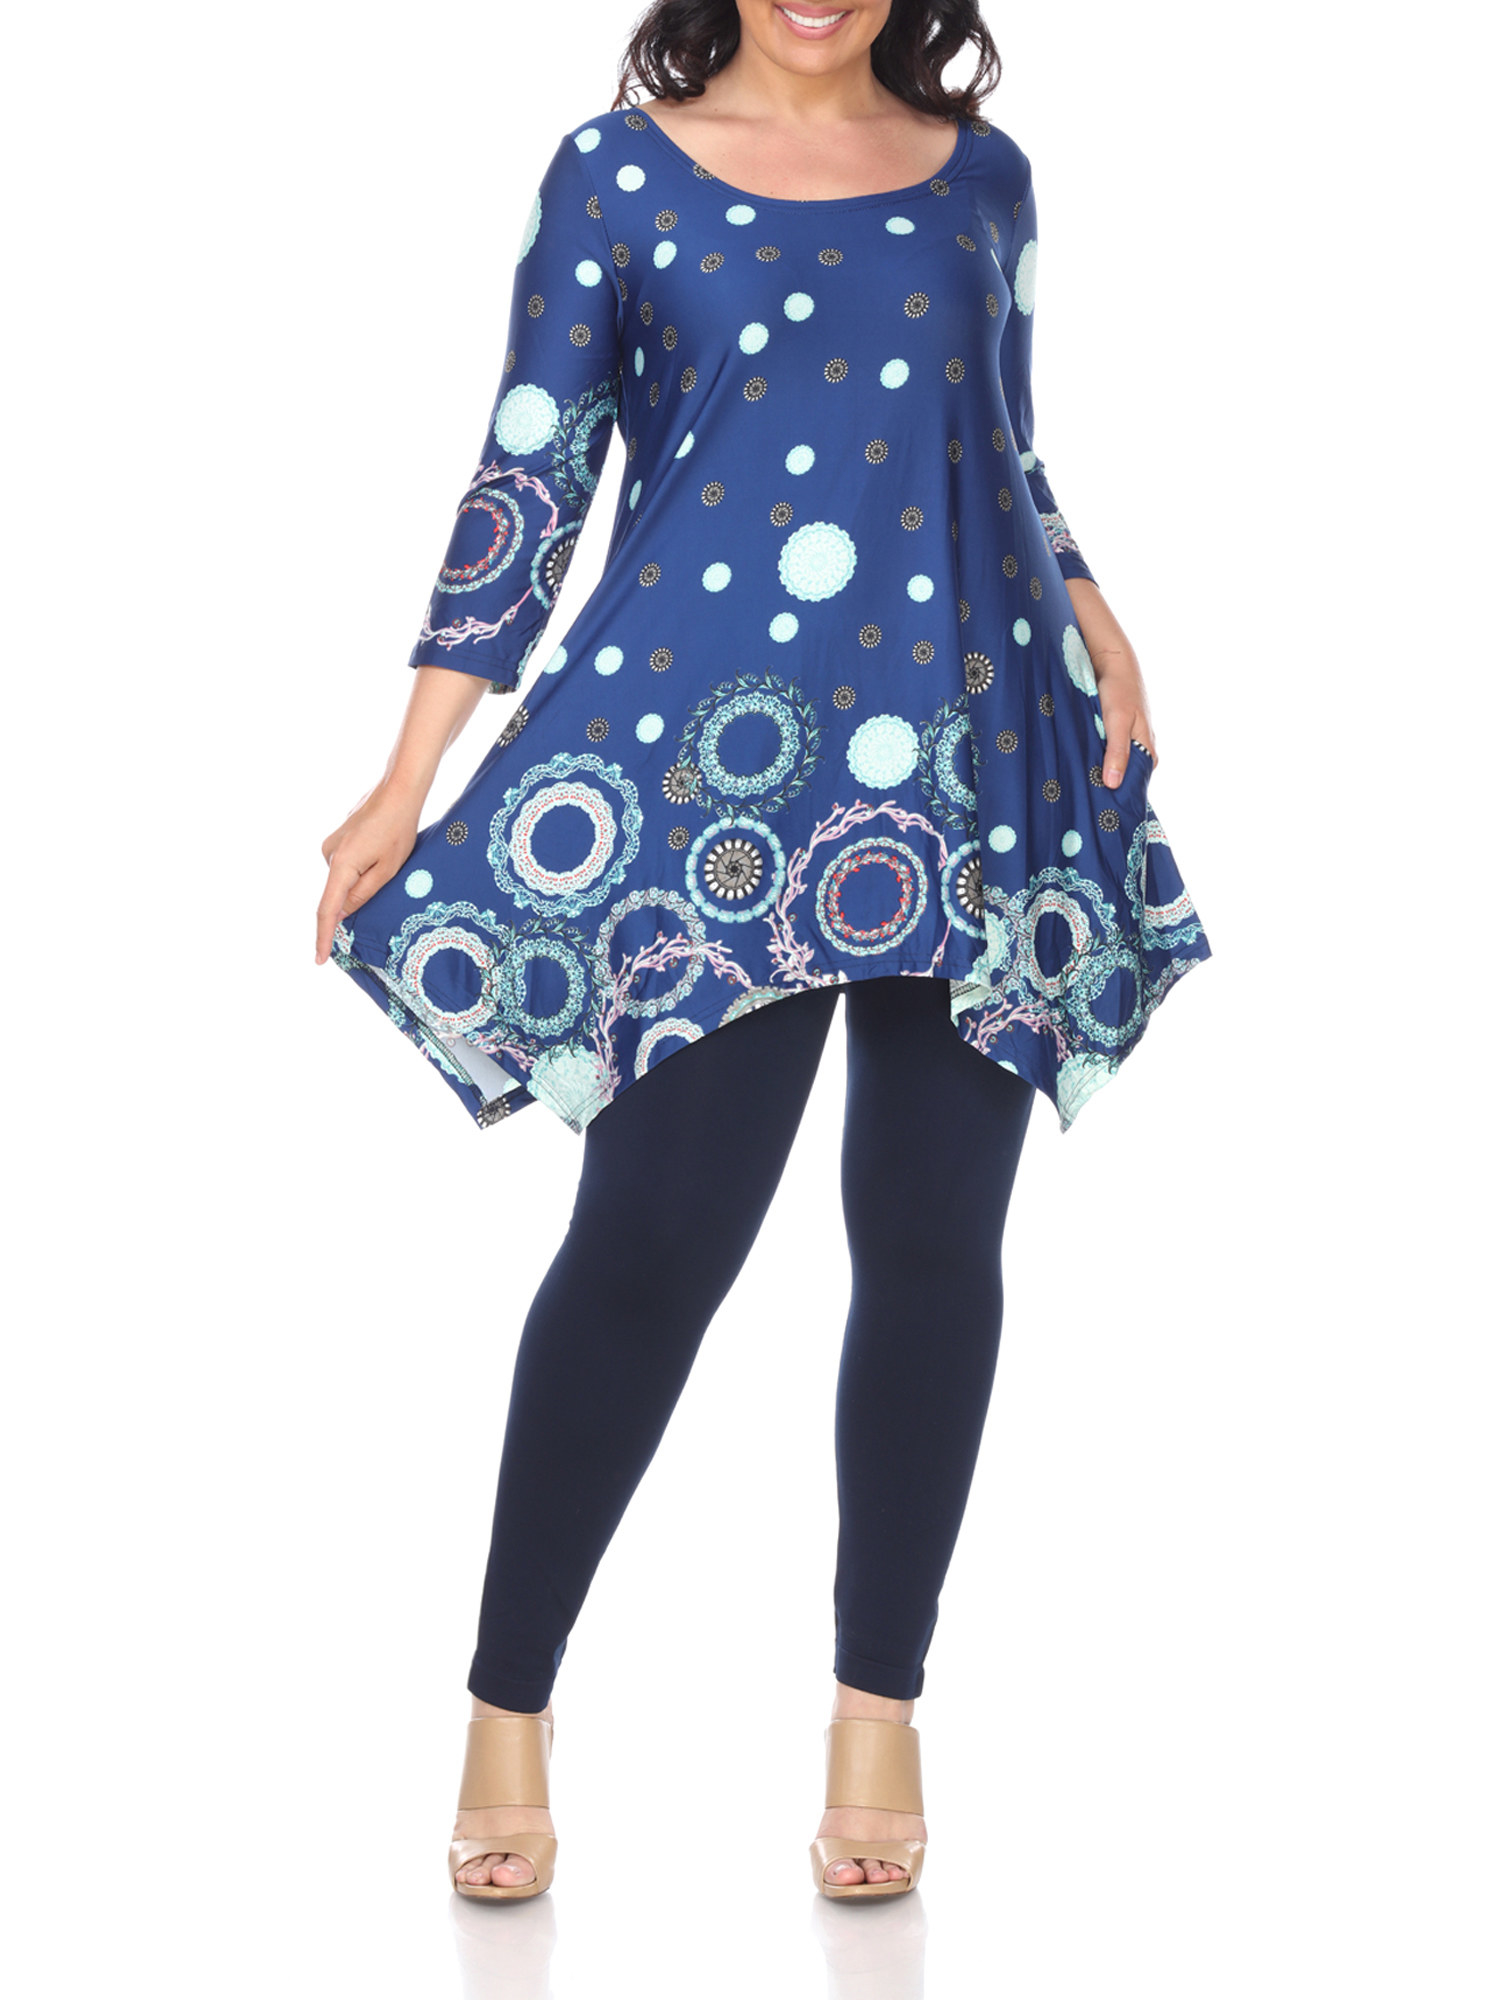 Model wearing blue patterned tunic with asymmetric hem